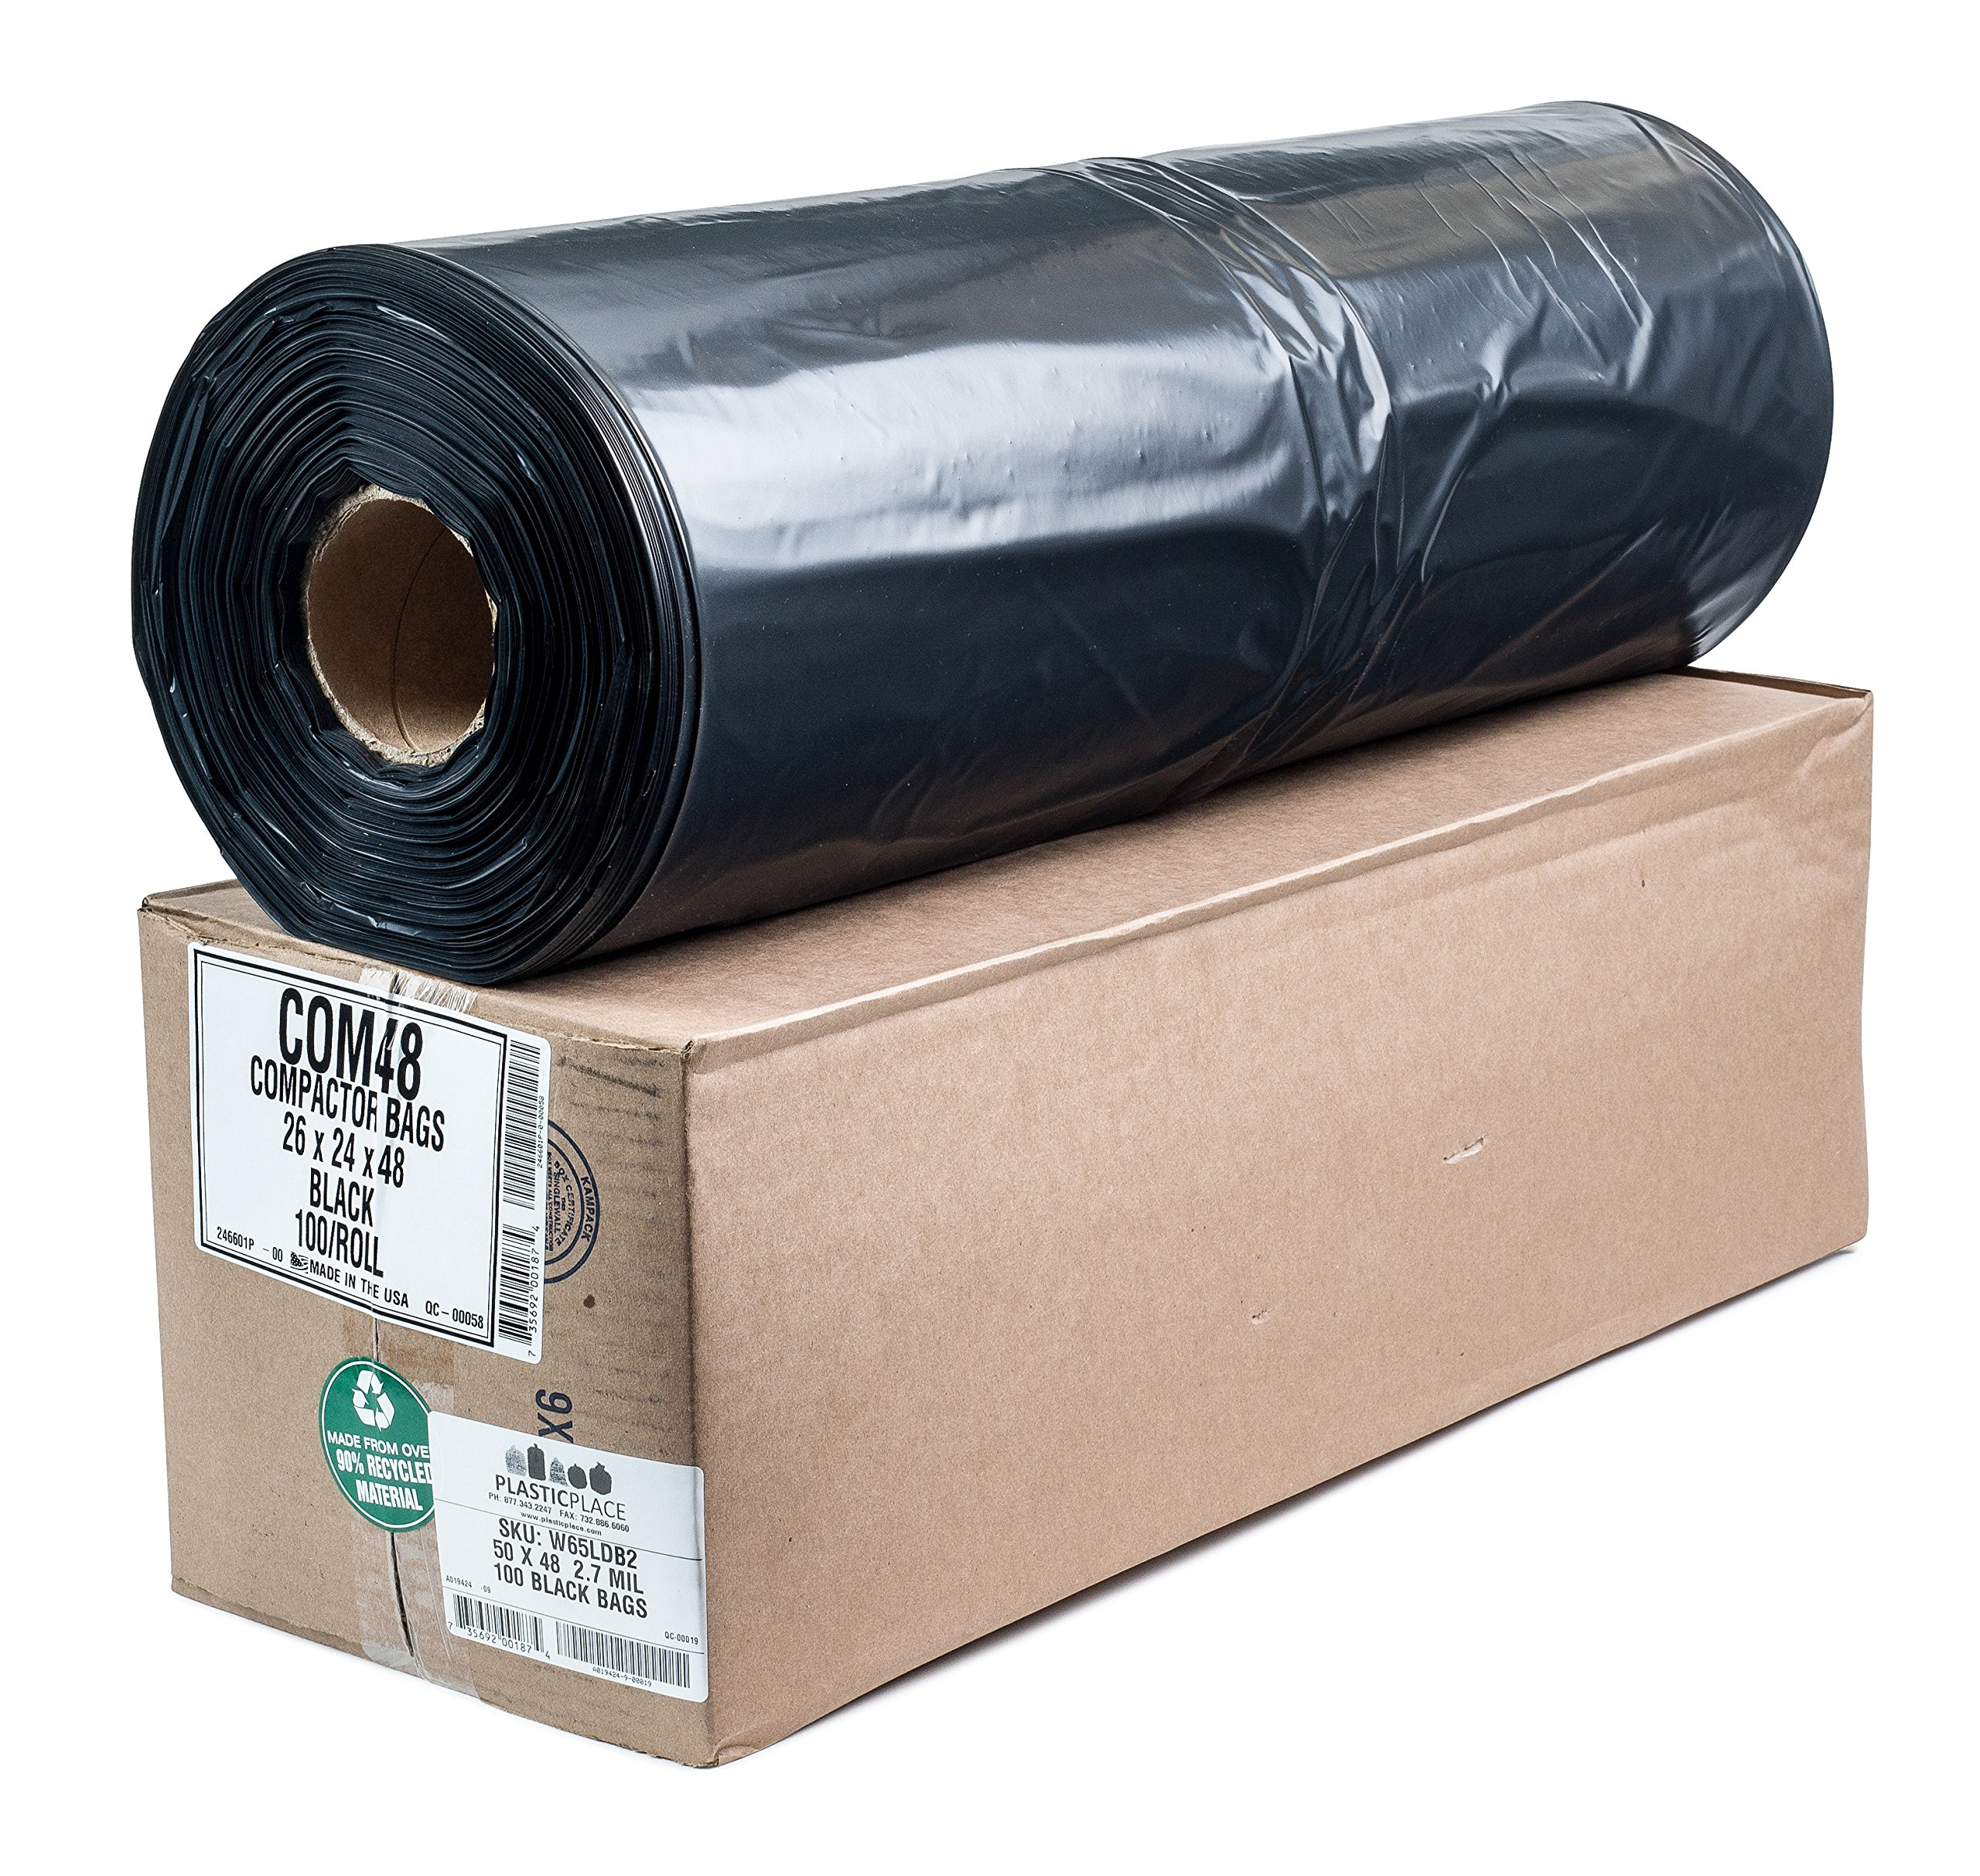 Plasticplace Compactor Bags, Black, 65 Gallon, 50x48,100/roll